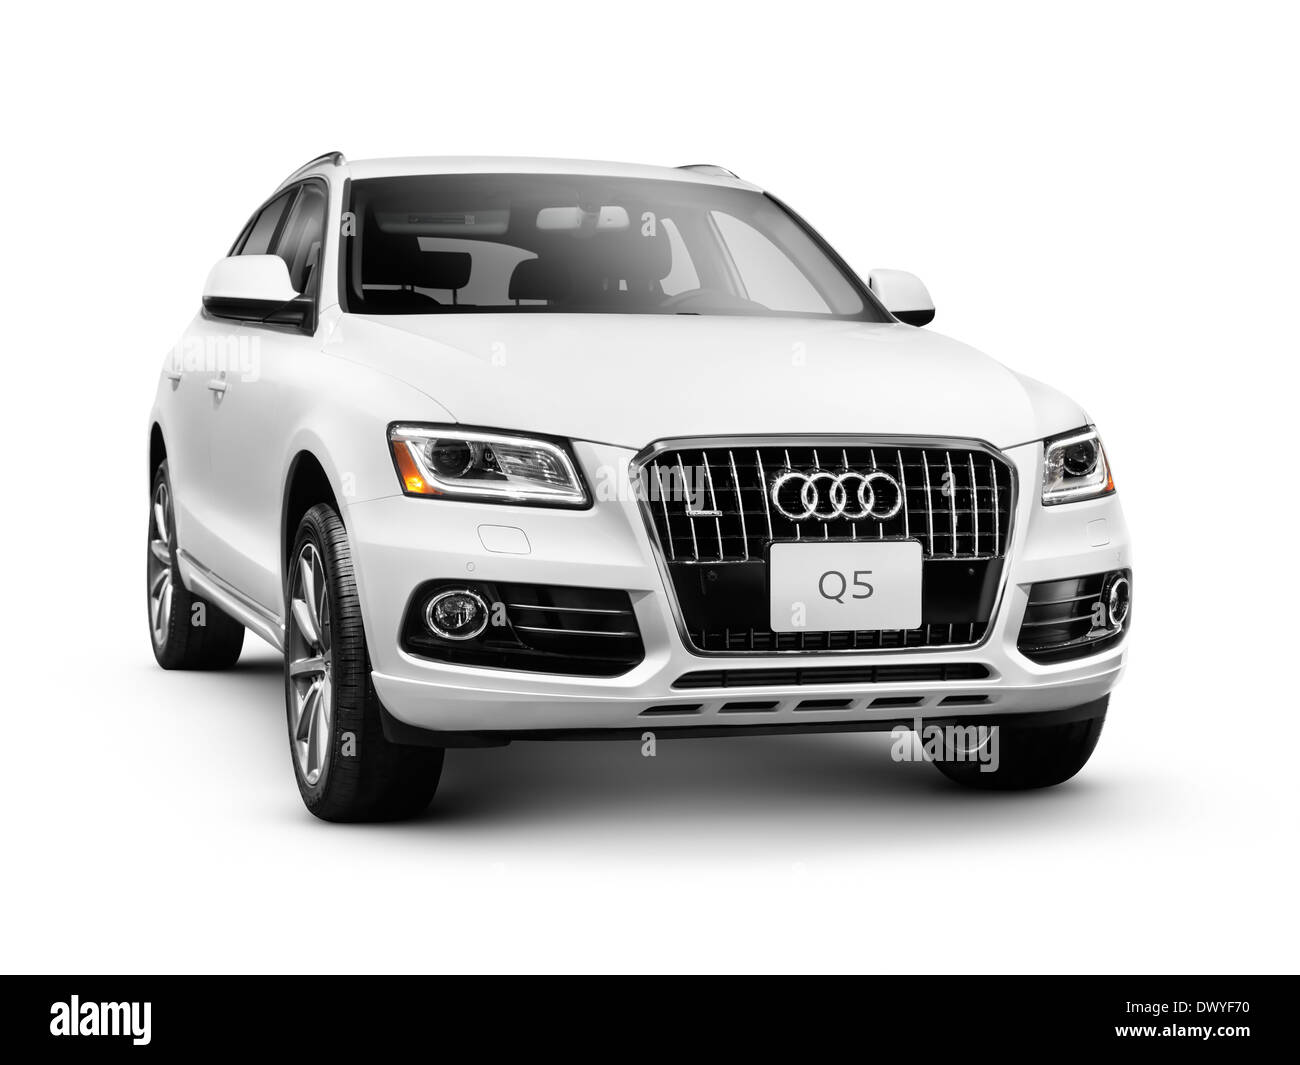 2014 Audi Q5 TDI Quattro SUV. Isolated car on white background with clipping path - Stock Image